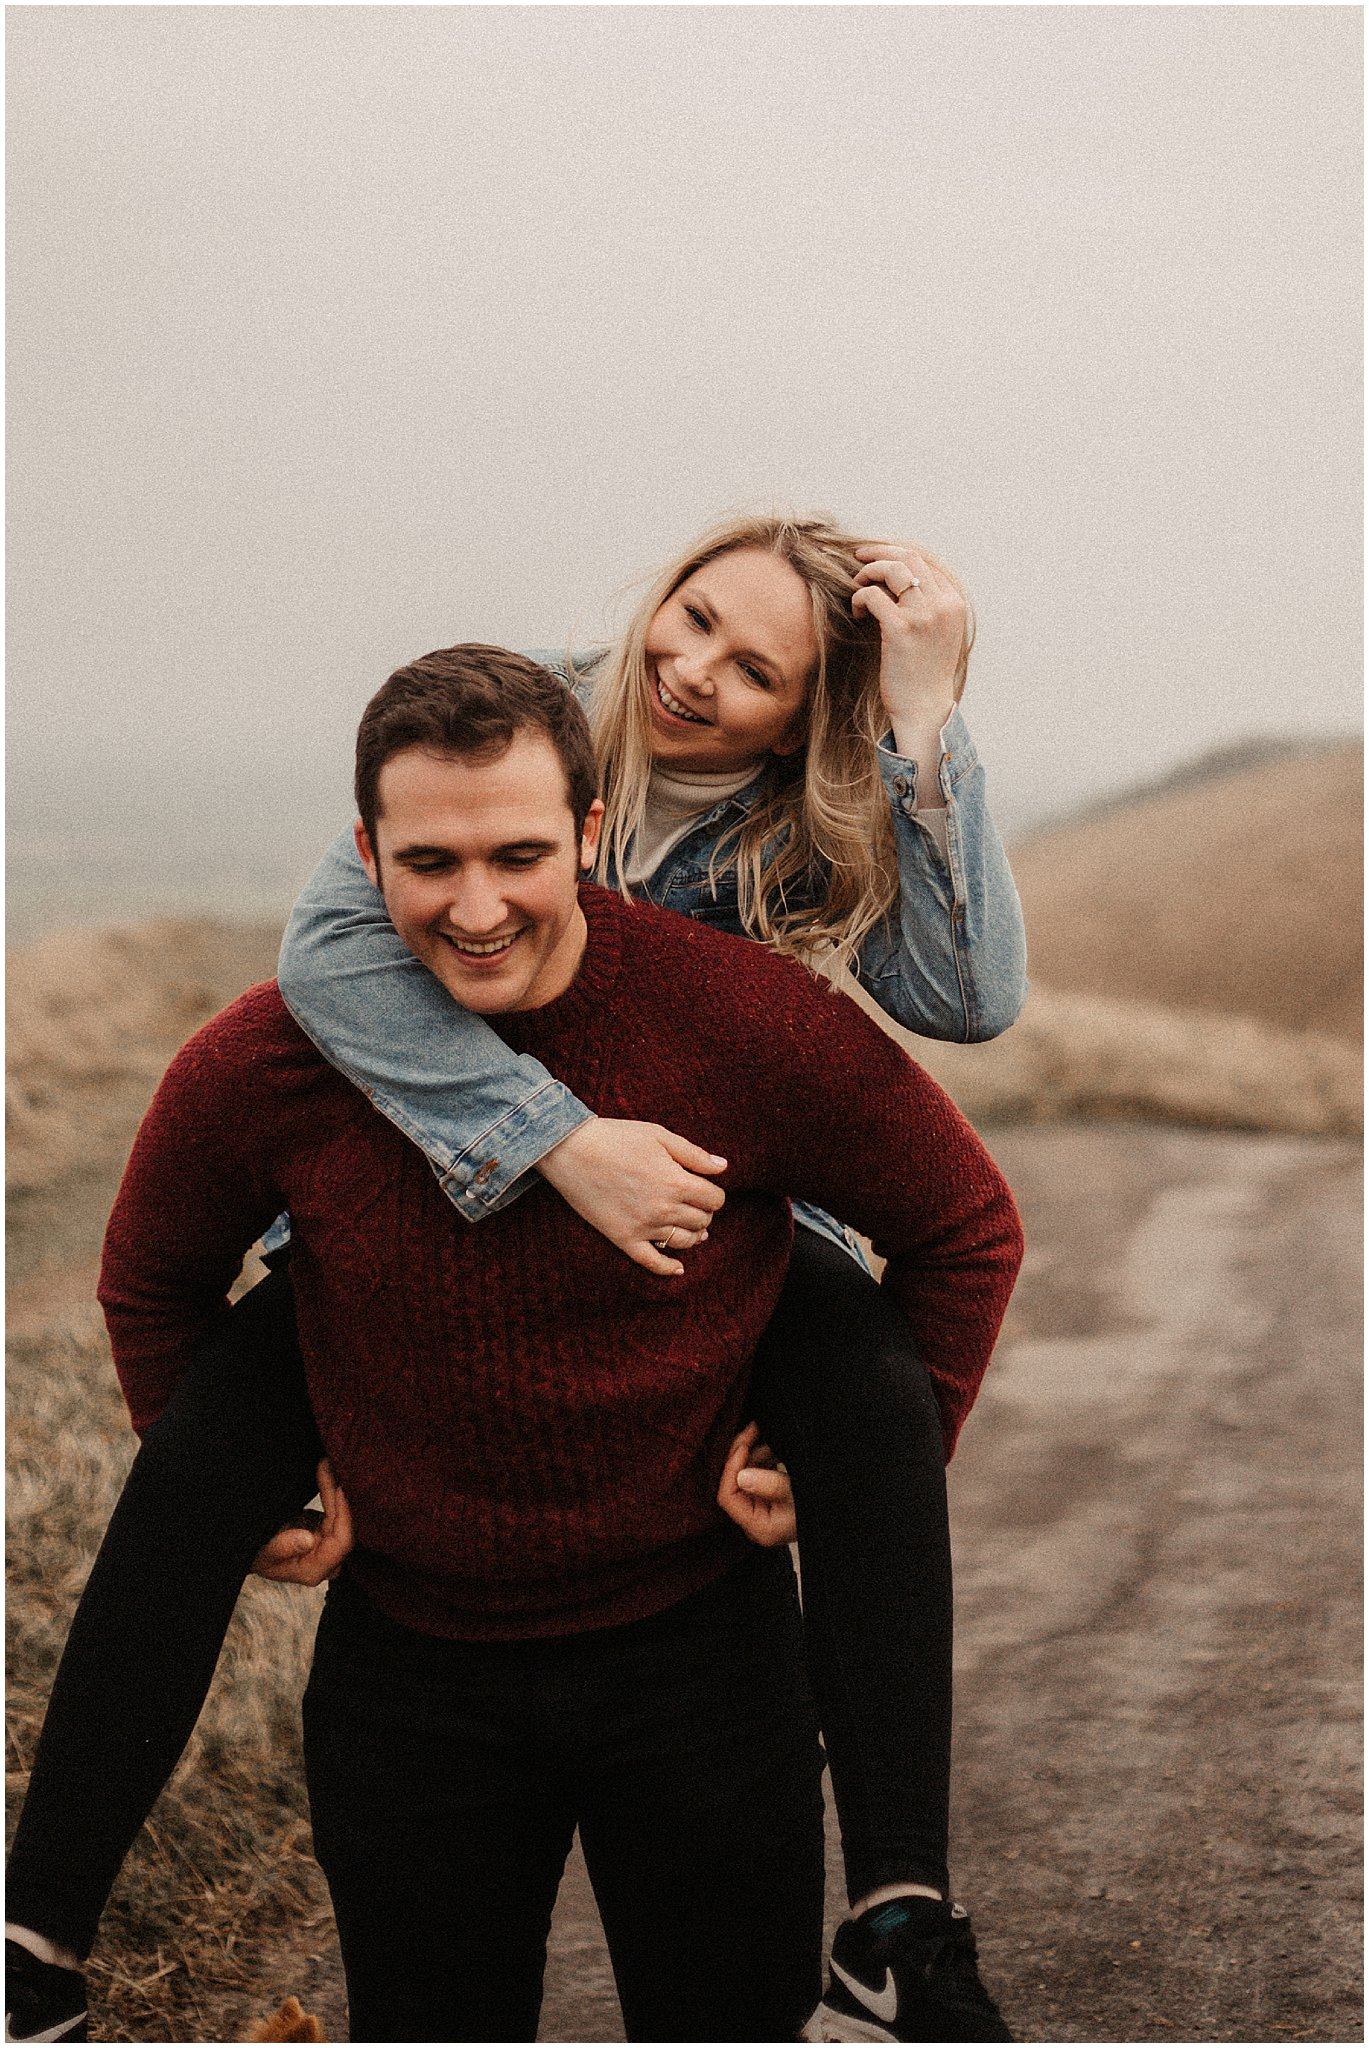 Mike & Charley_s Winter Engagement Shoot Wiltshire-139.jpg